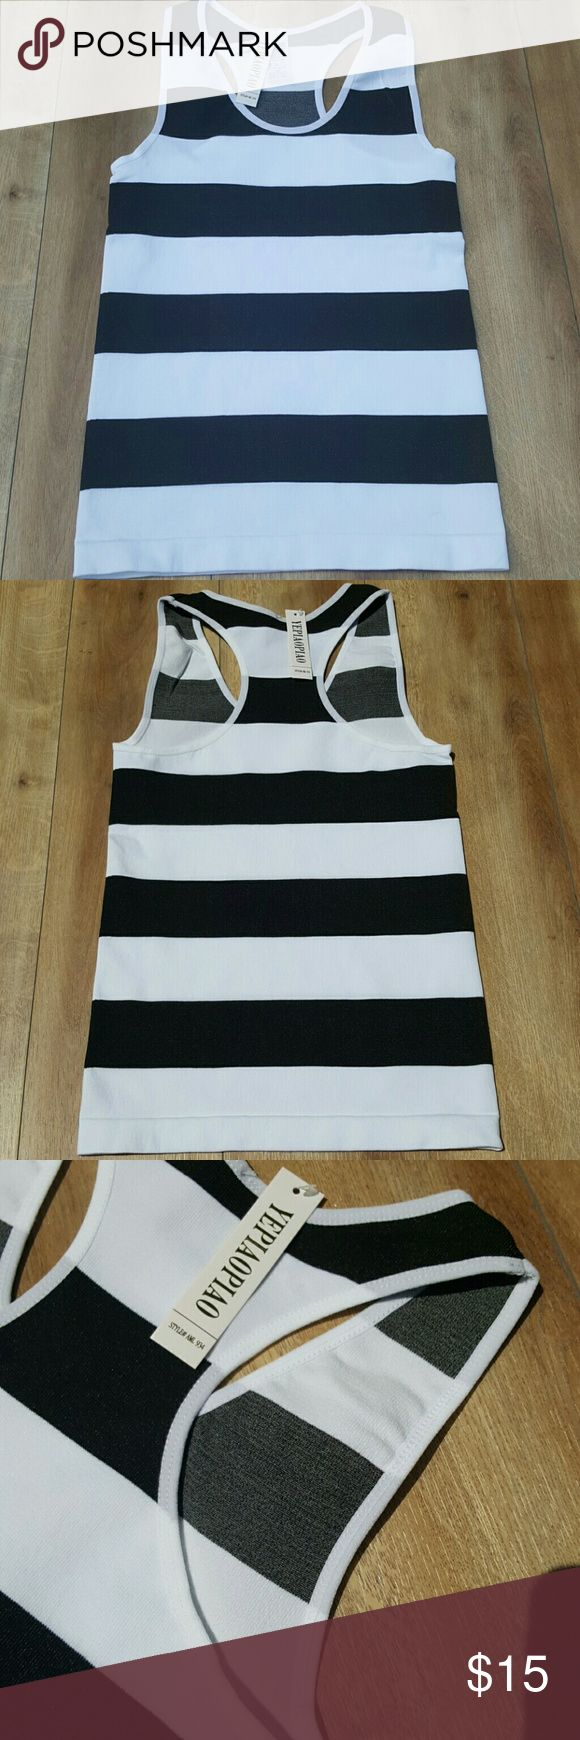 NWT TANK TOP Black and white thick stripe tank top comes with tags and bag it came in SIZE OS stretchy material perfect for summer yepiaopiao Tops Tank Tops